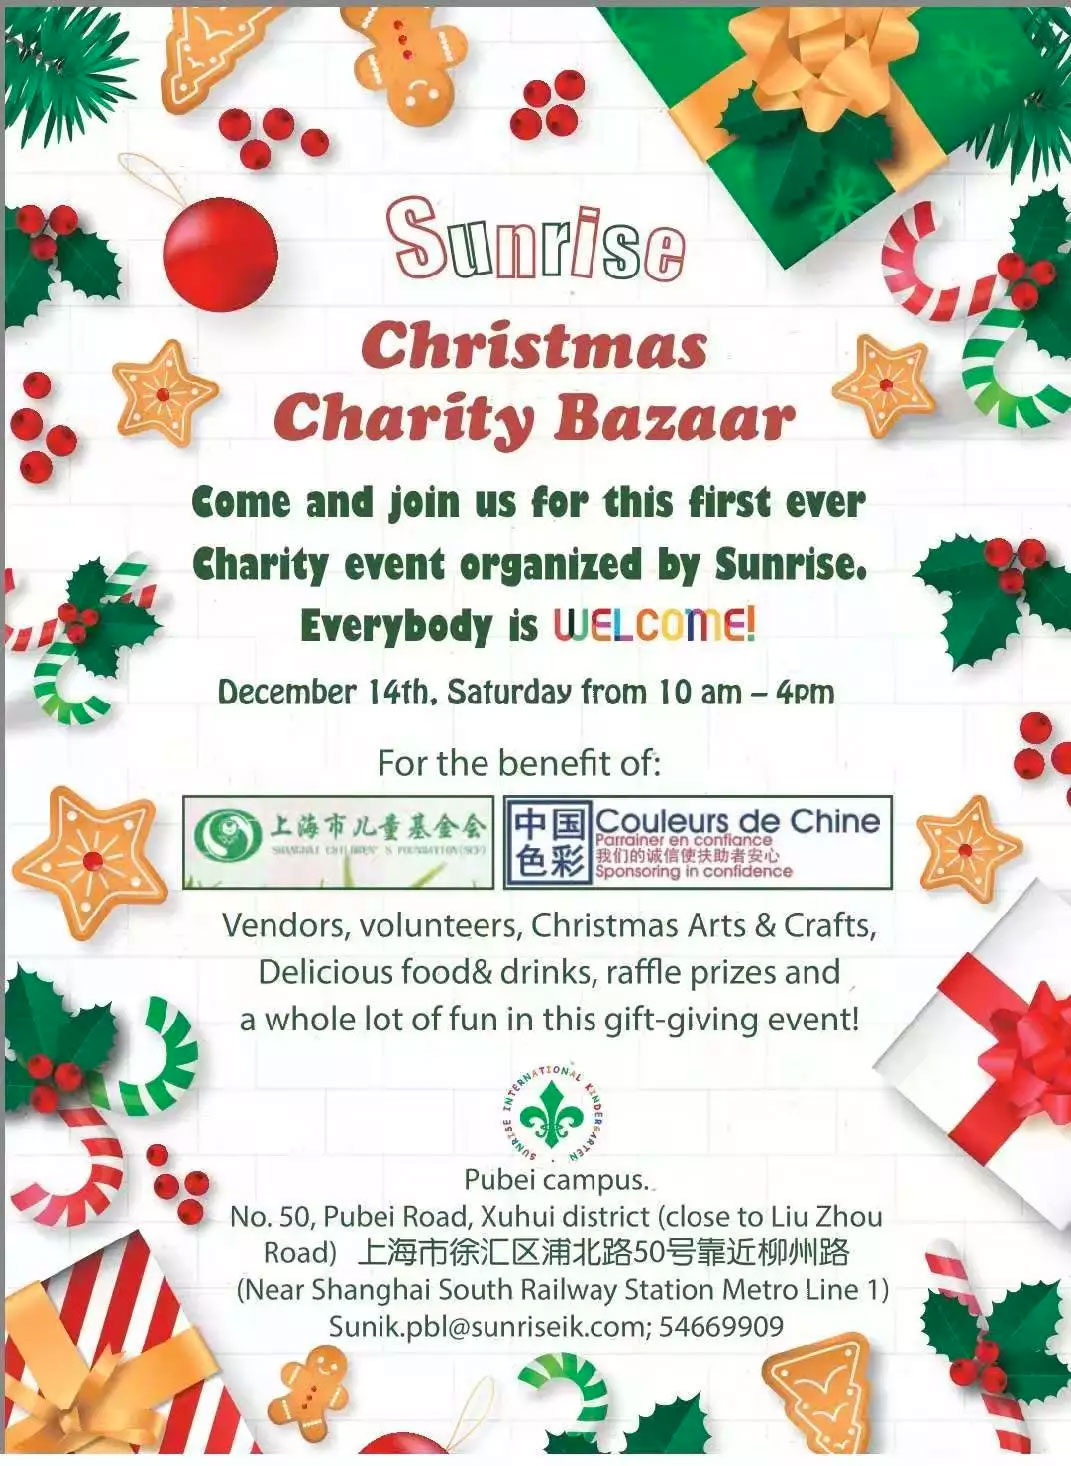 Sunrise Charity Bazaar